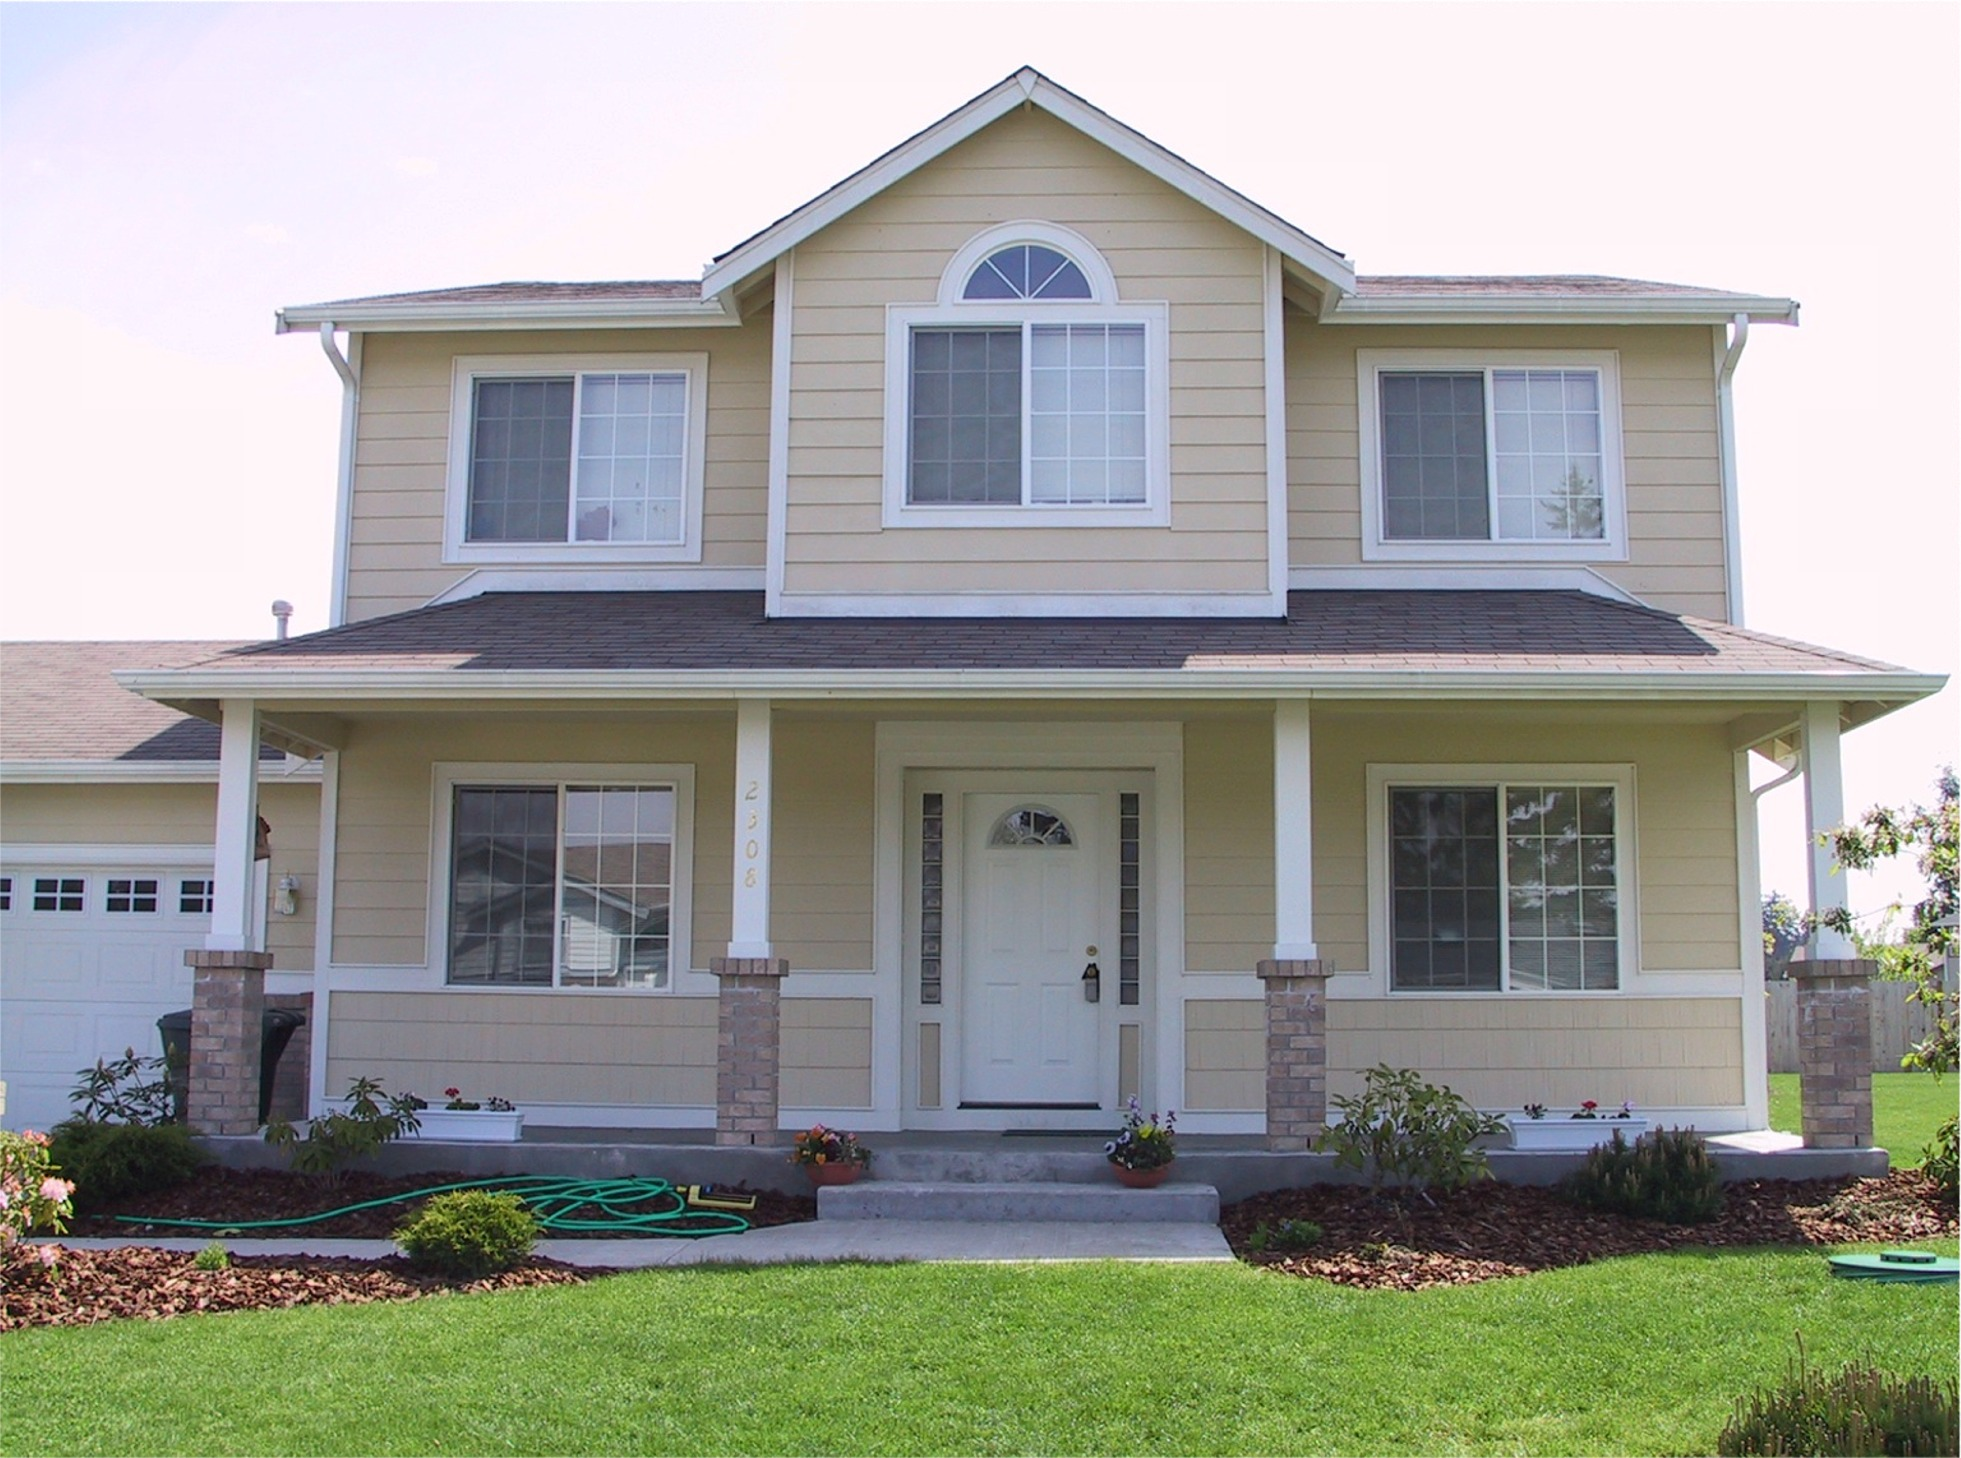 Picture Of House how to sell your house | sellers |